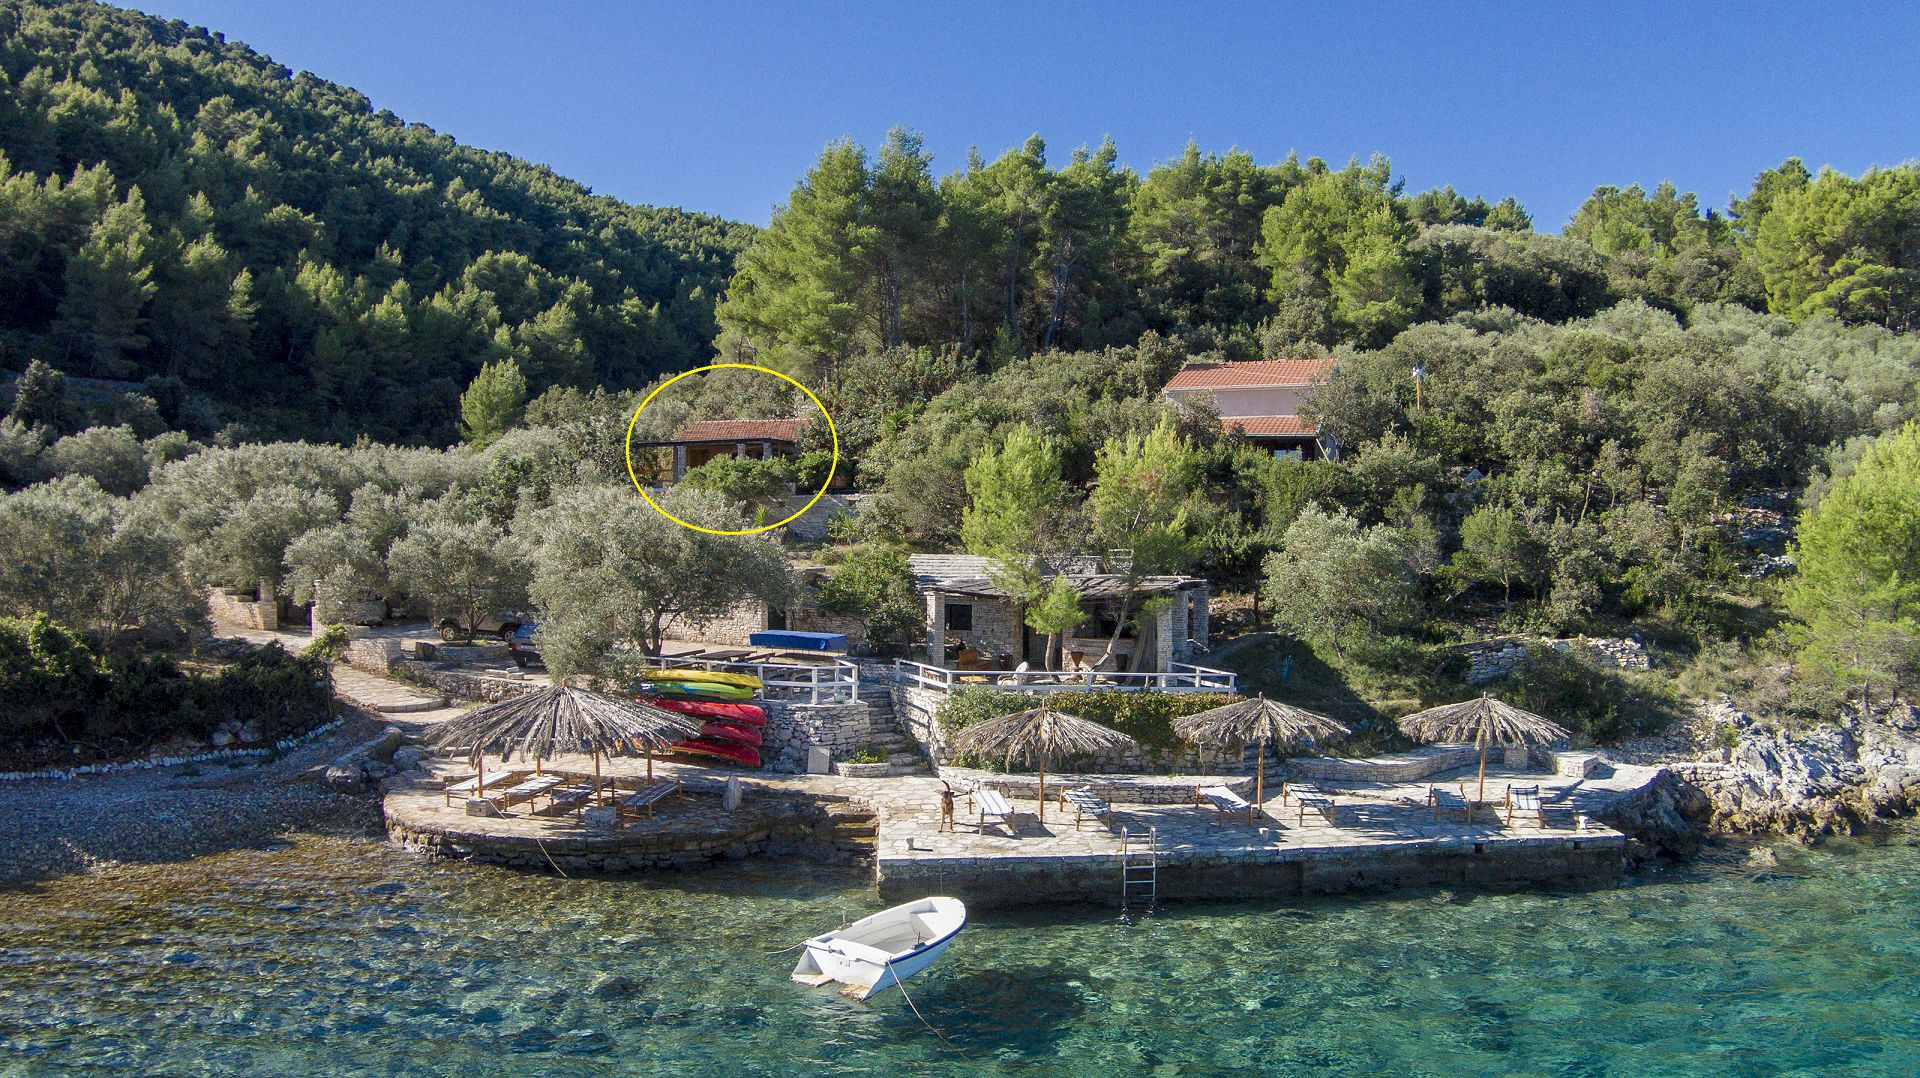 A1214VLUK - Cove Picena (Vela Luka) - Holiday houses, villas Croatia